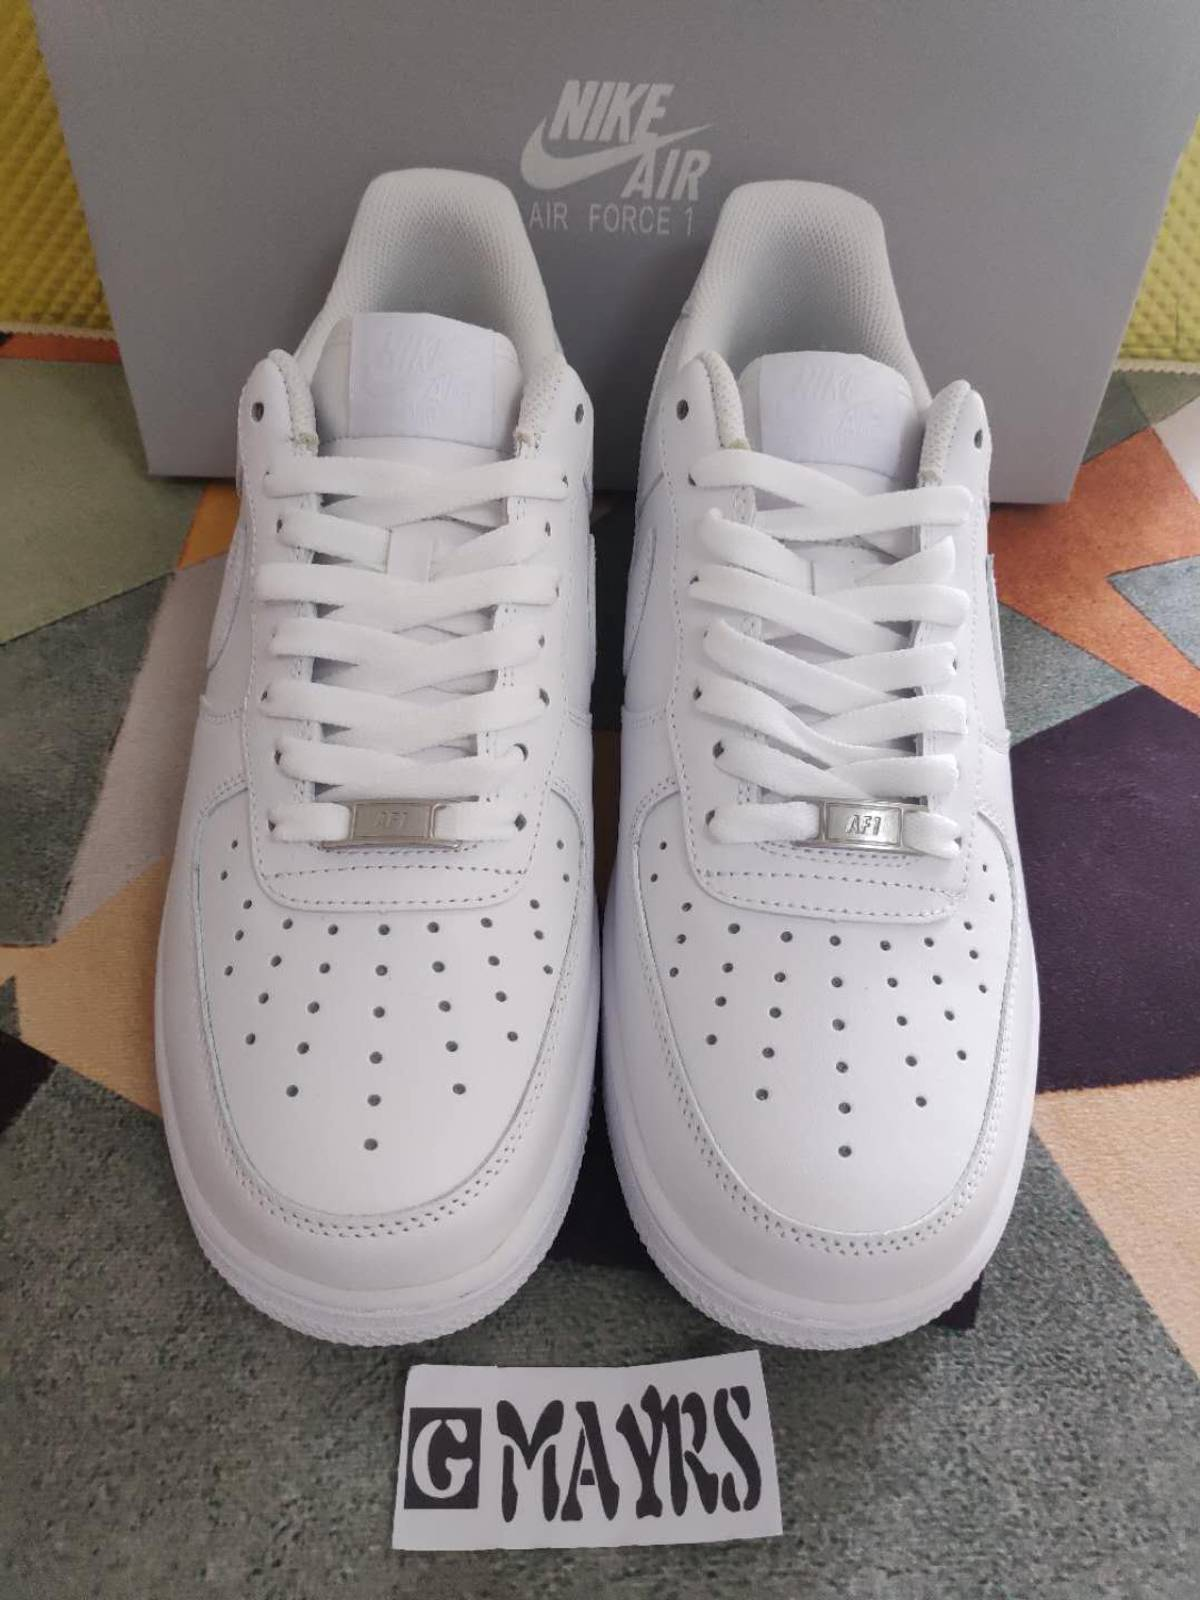 Nike Men's Air Force 1 Low 07 White Size 10.5 Size 10.5 $80